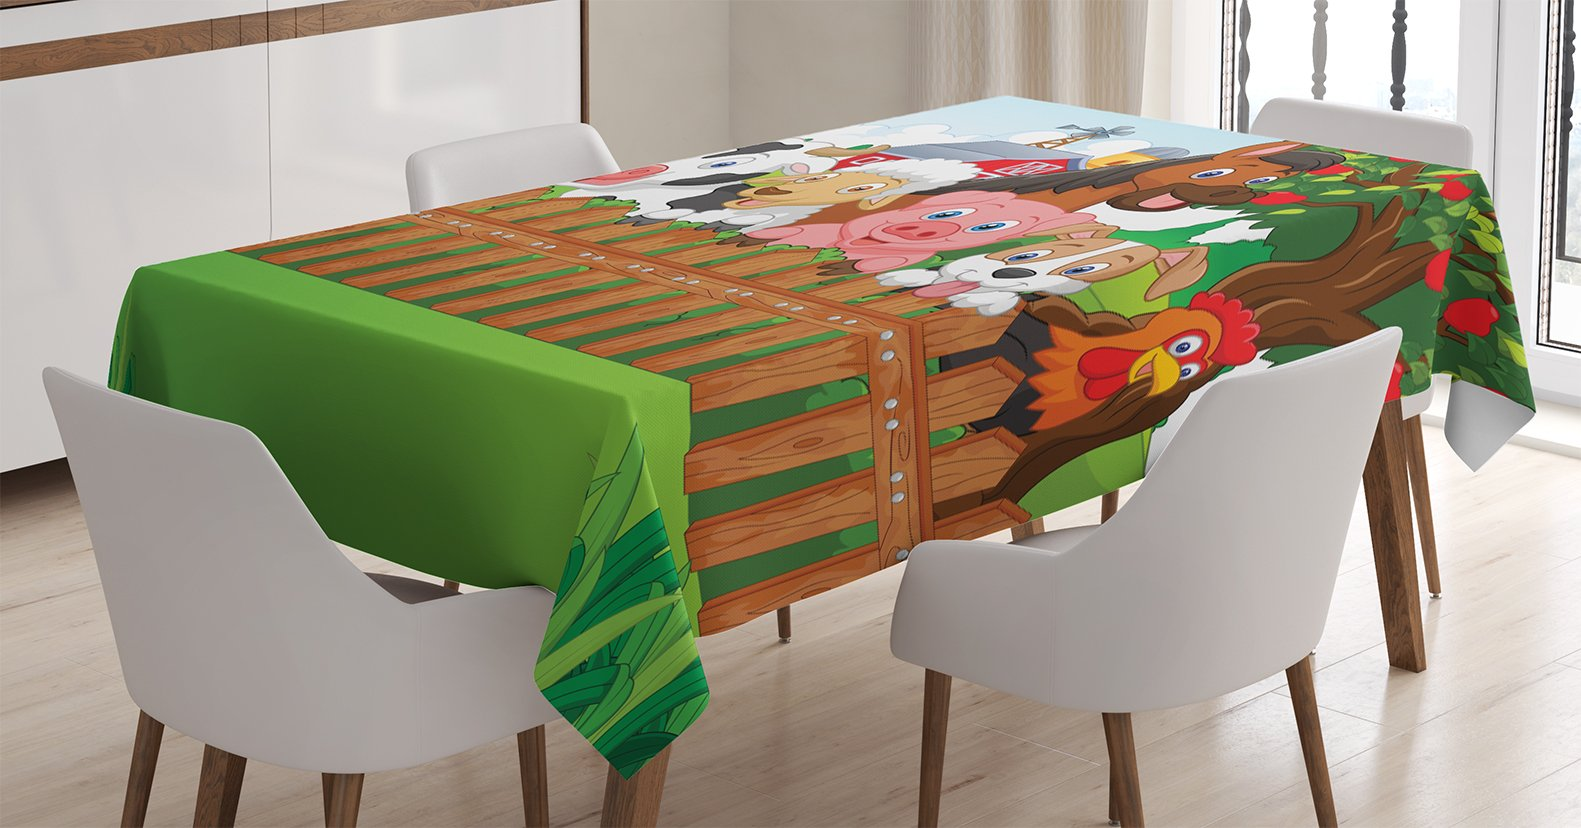 Ambesonne Cartoon Tablecloth, Composition Cute Farm Animals on Fence Comic Mascots with Dog Cow Horse Kids Design, Dining Room Kitchen Rectangular Table Cover, 60 W X 84 L Inches, Multicolor